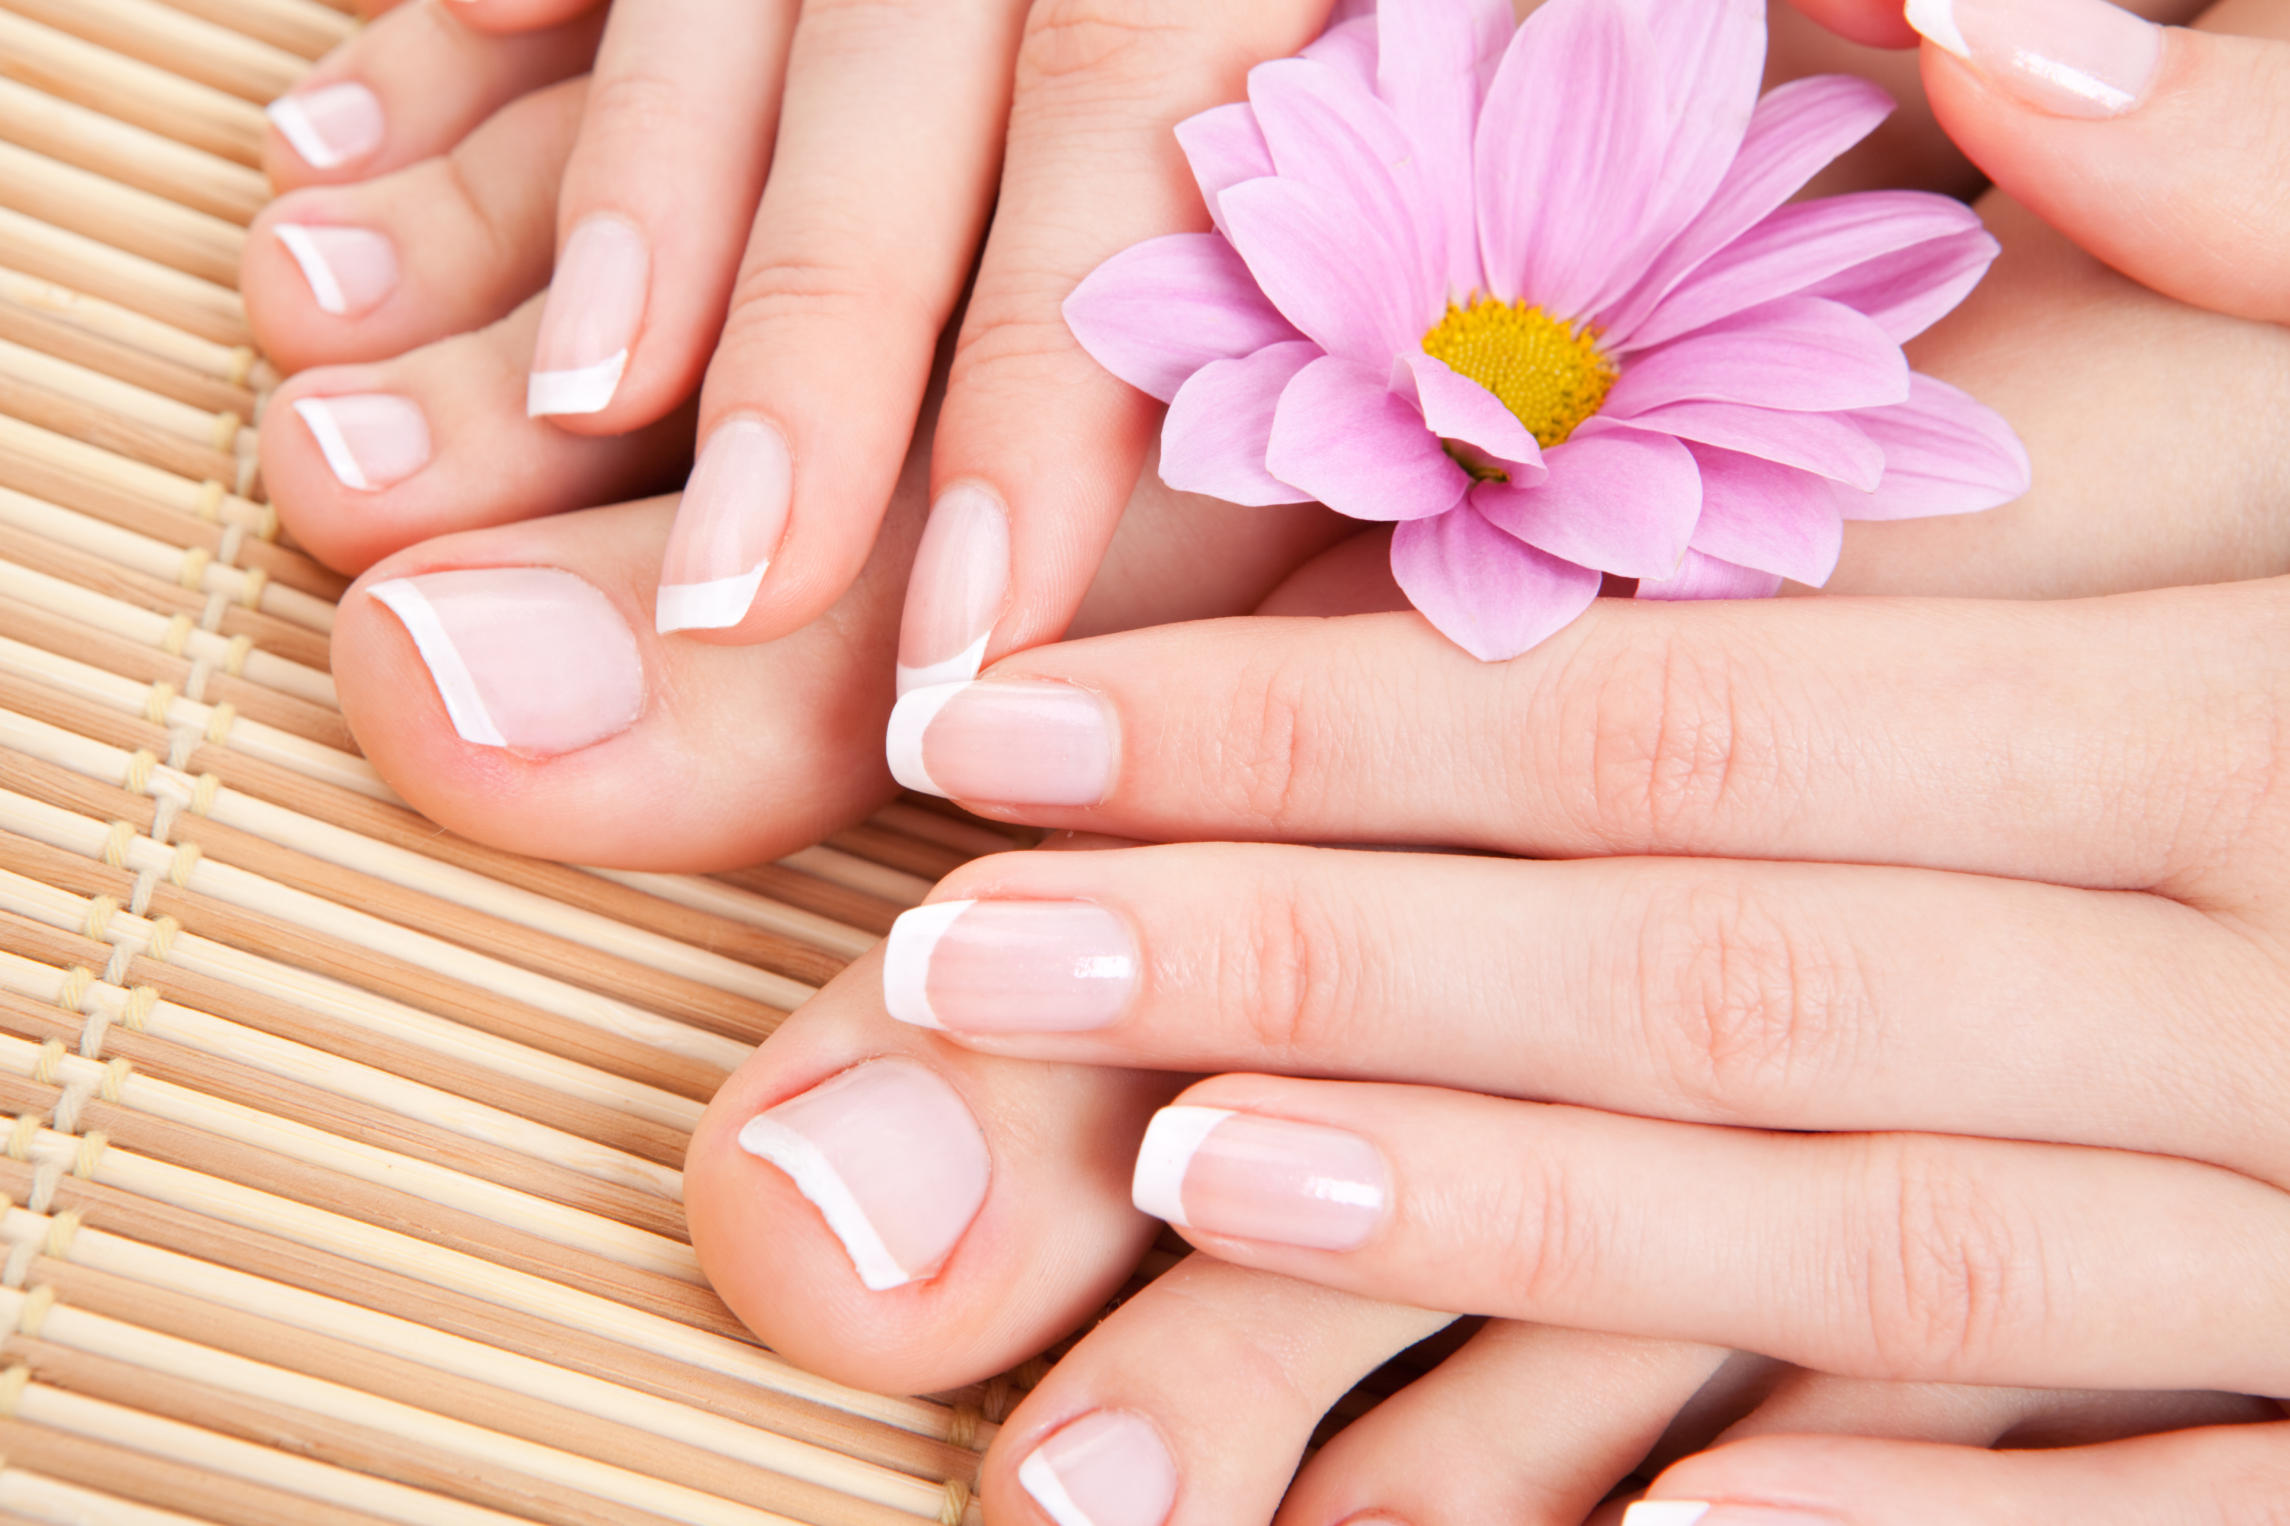 Isle, MN great nails elk river | Find great nails elk river in Isle, MN